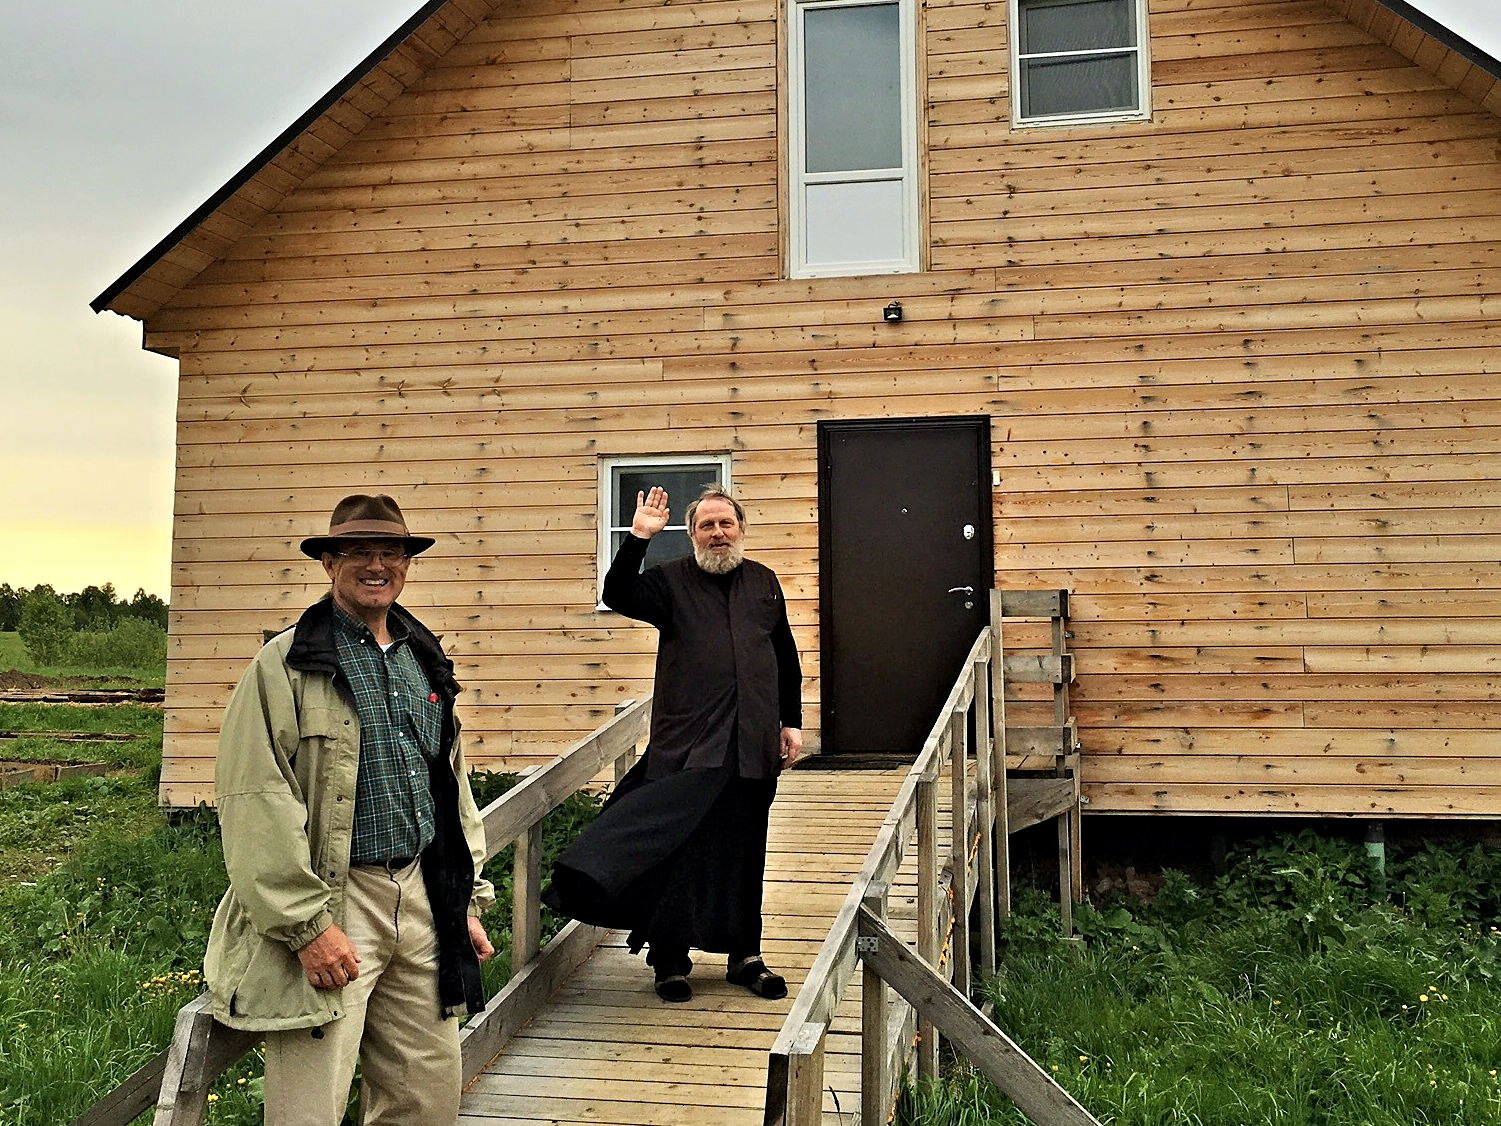 Al and Father Vladimir in front of the new dormitory